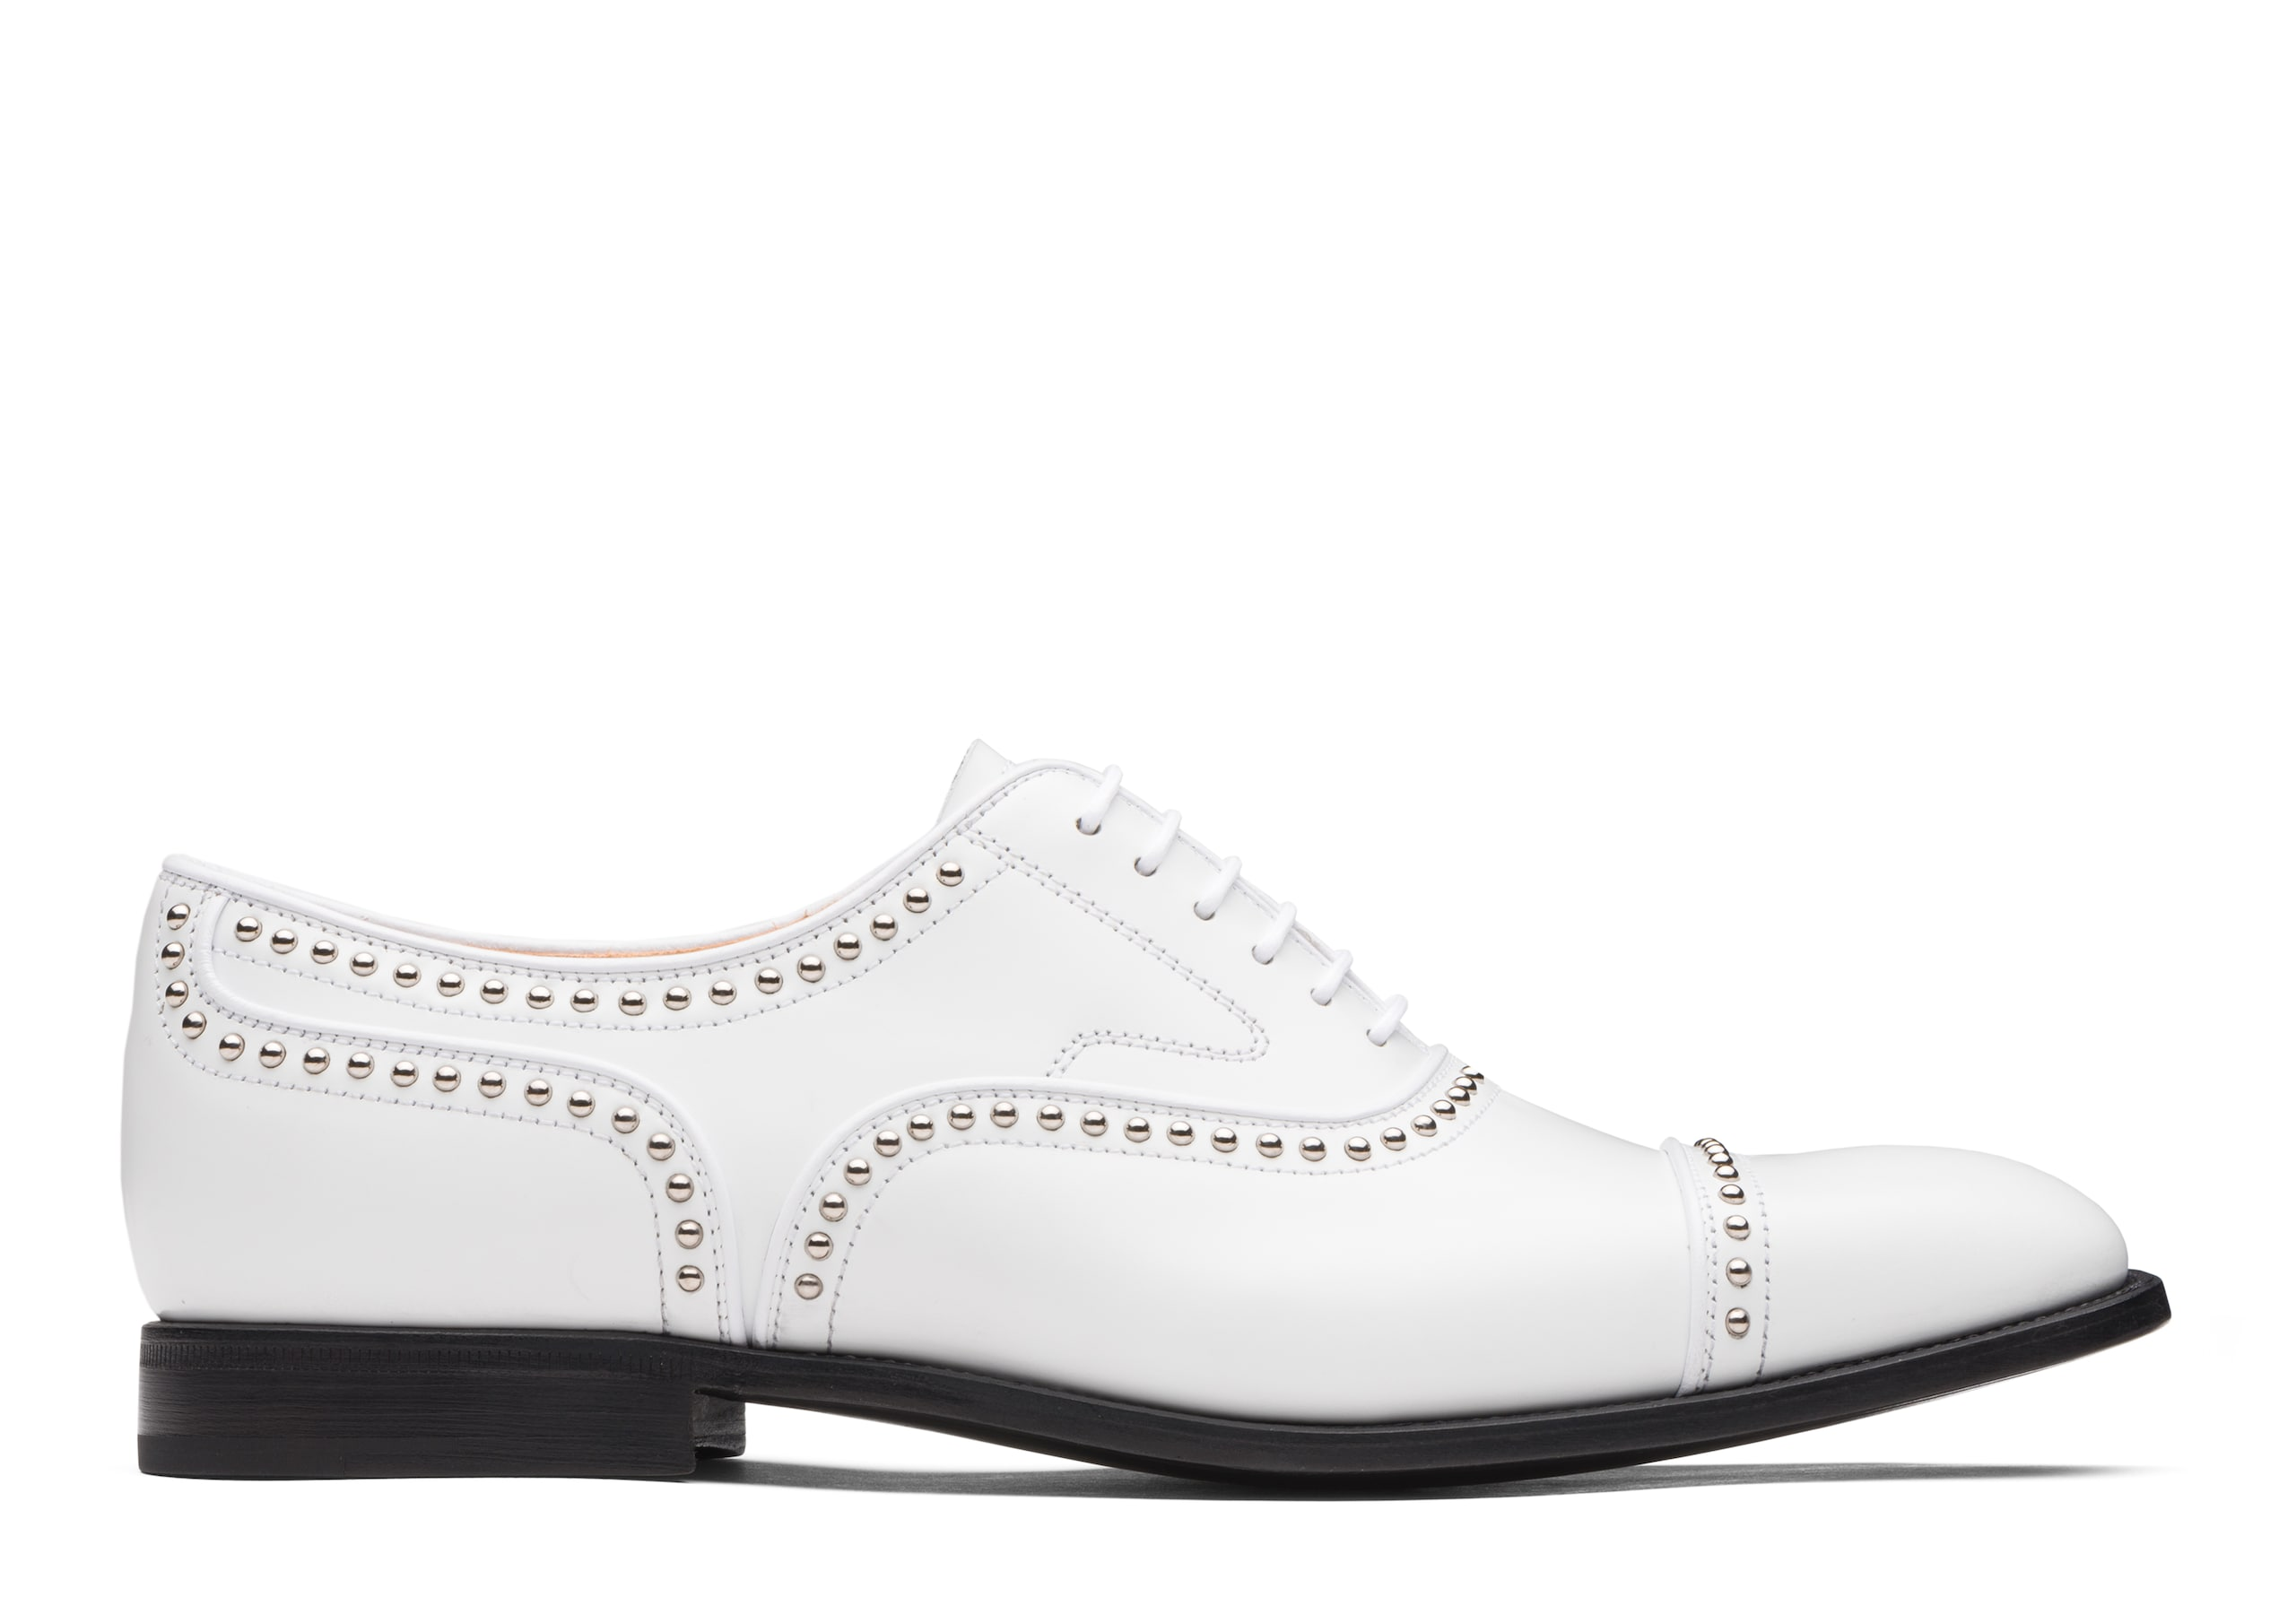 Anna met. 2 Church's Polished Binder Oxford Stud White